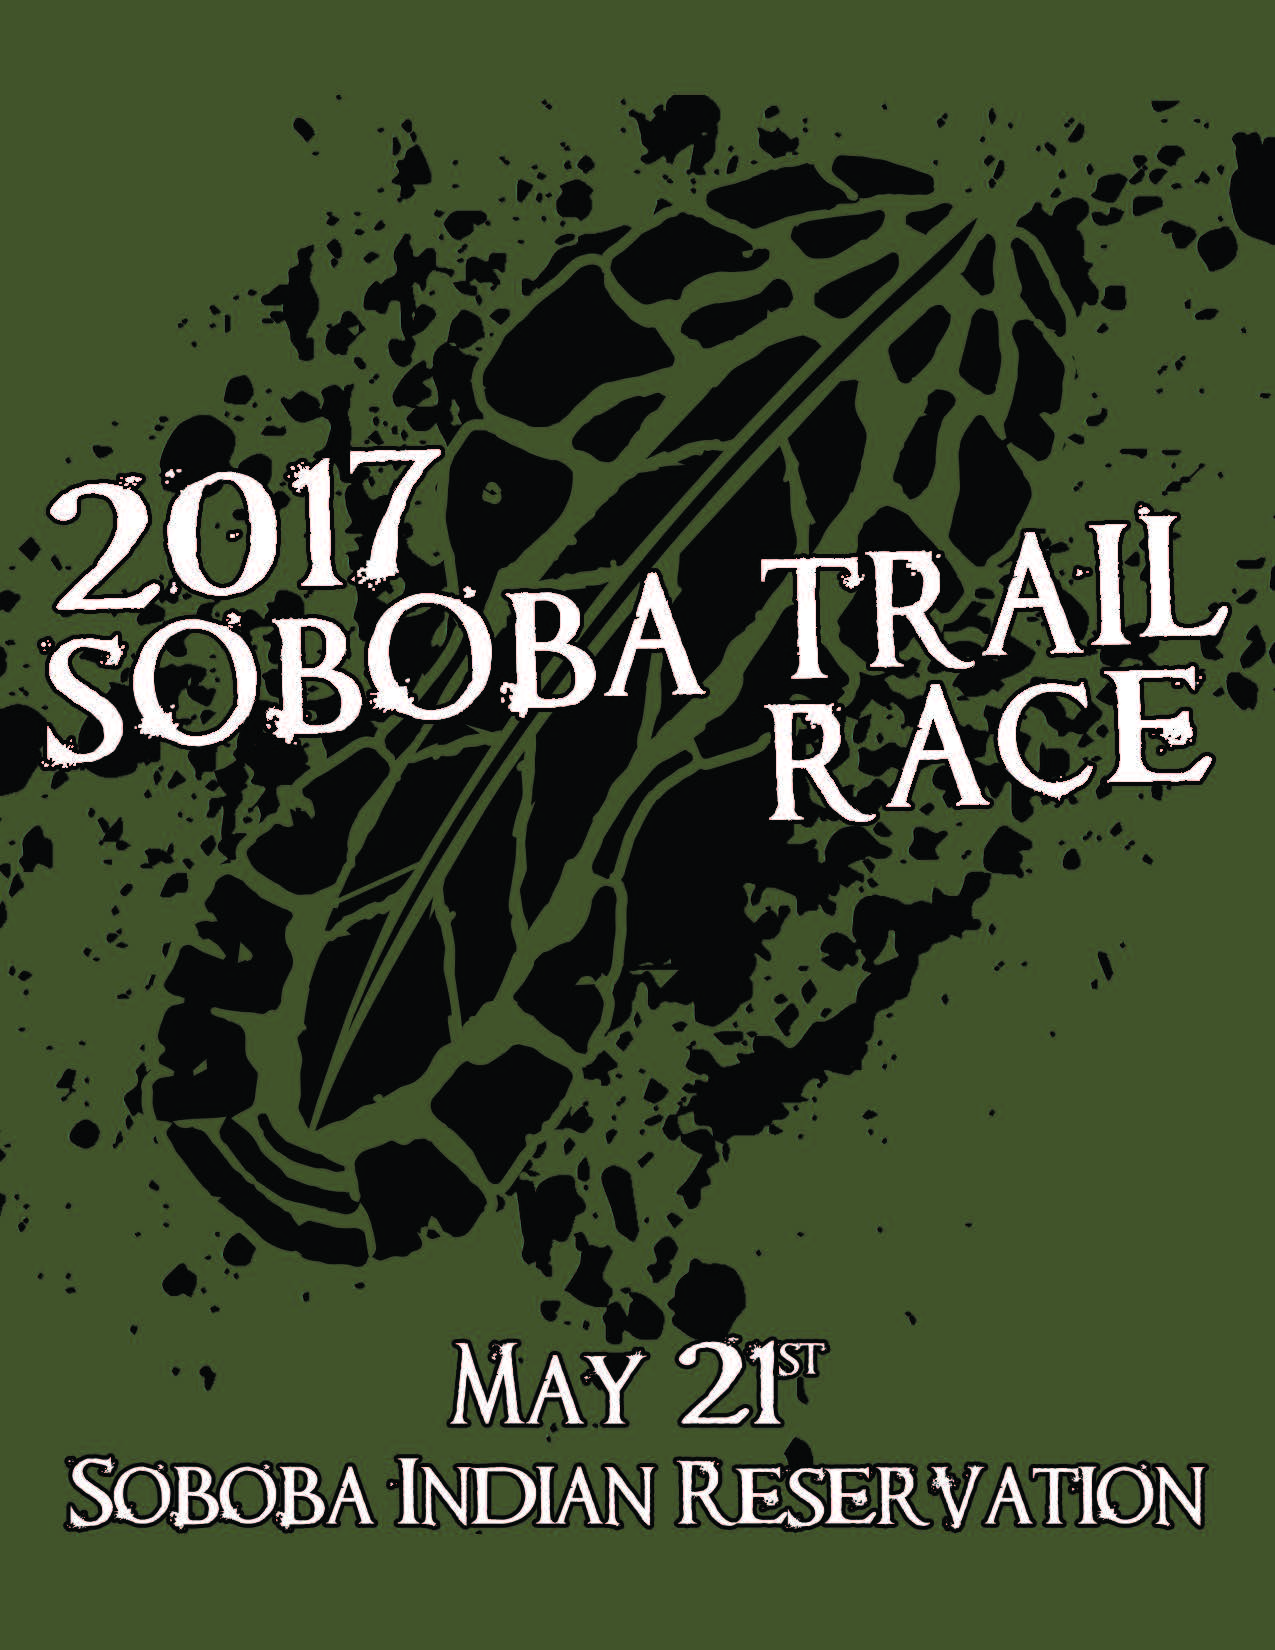 Trail race flyer front